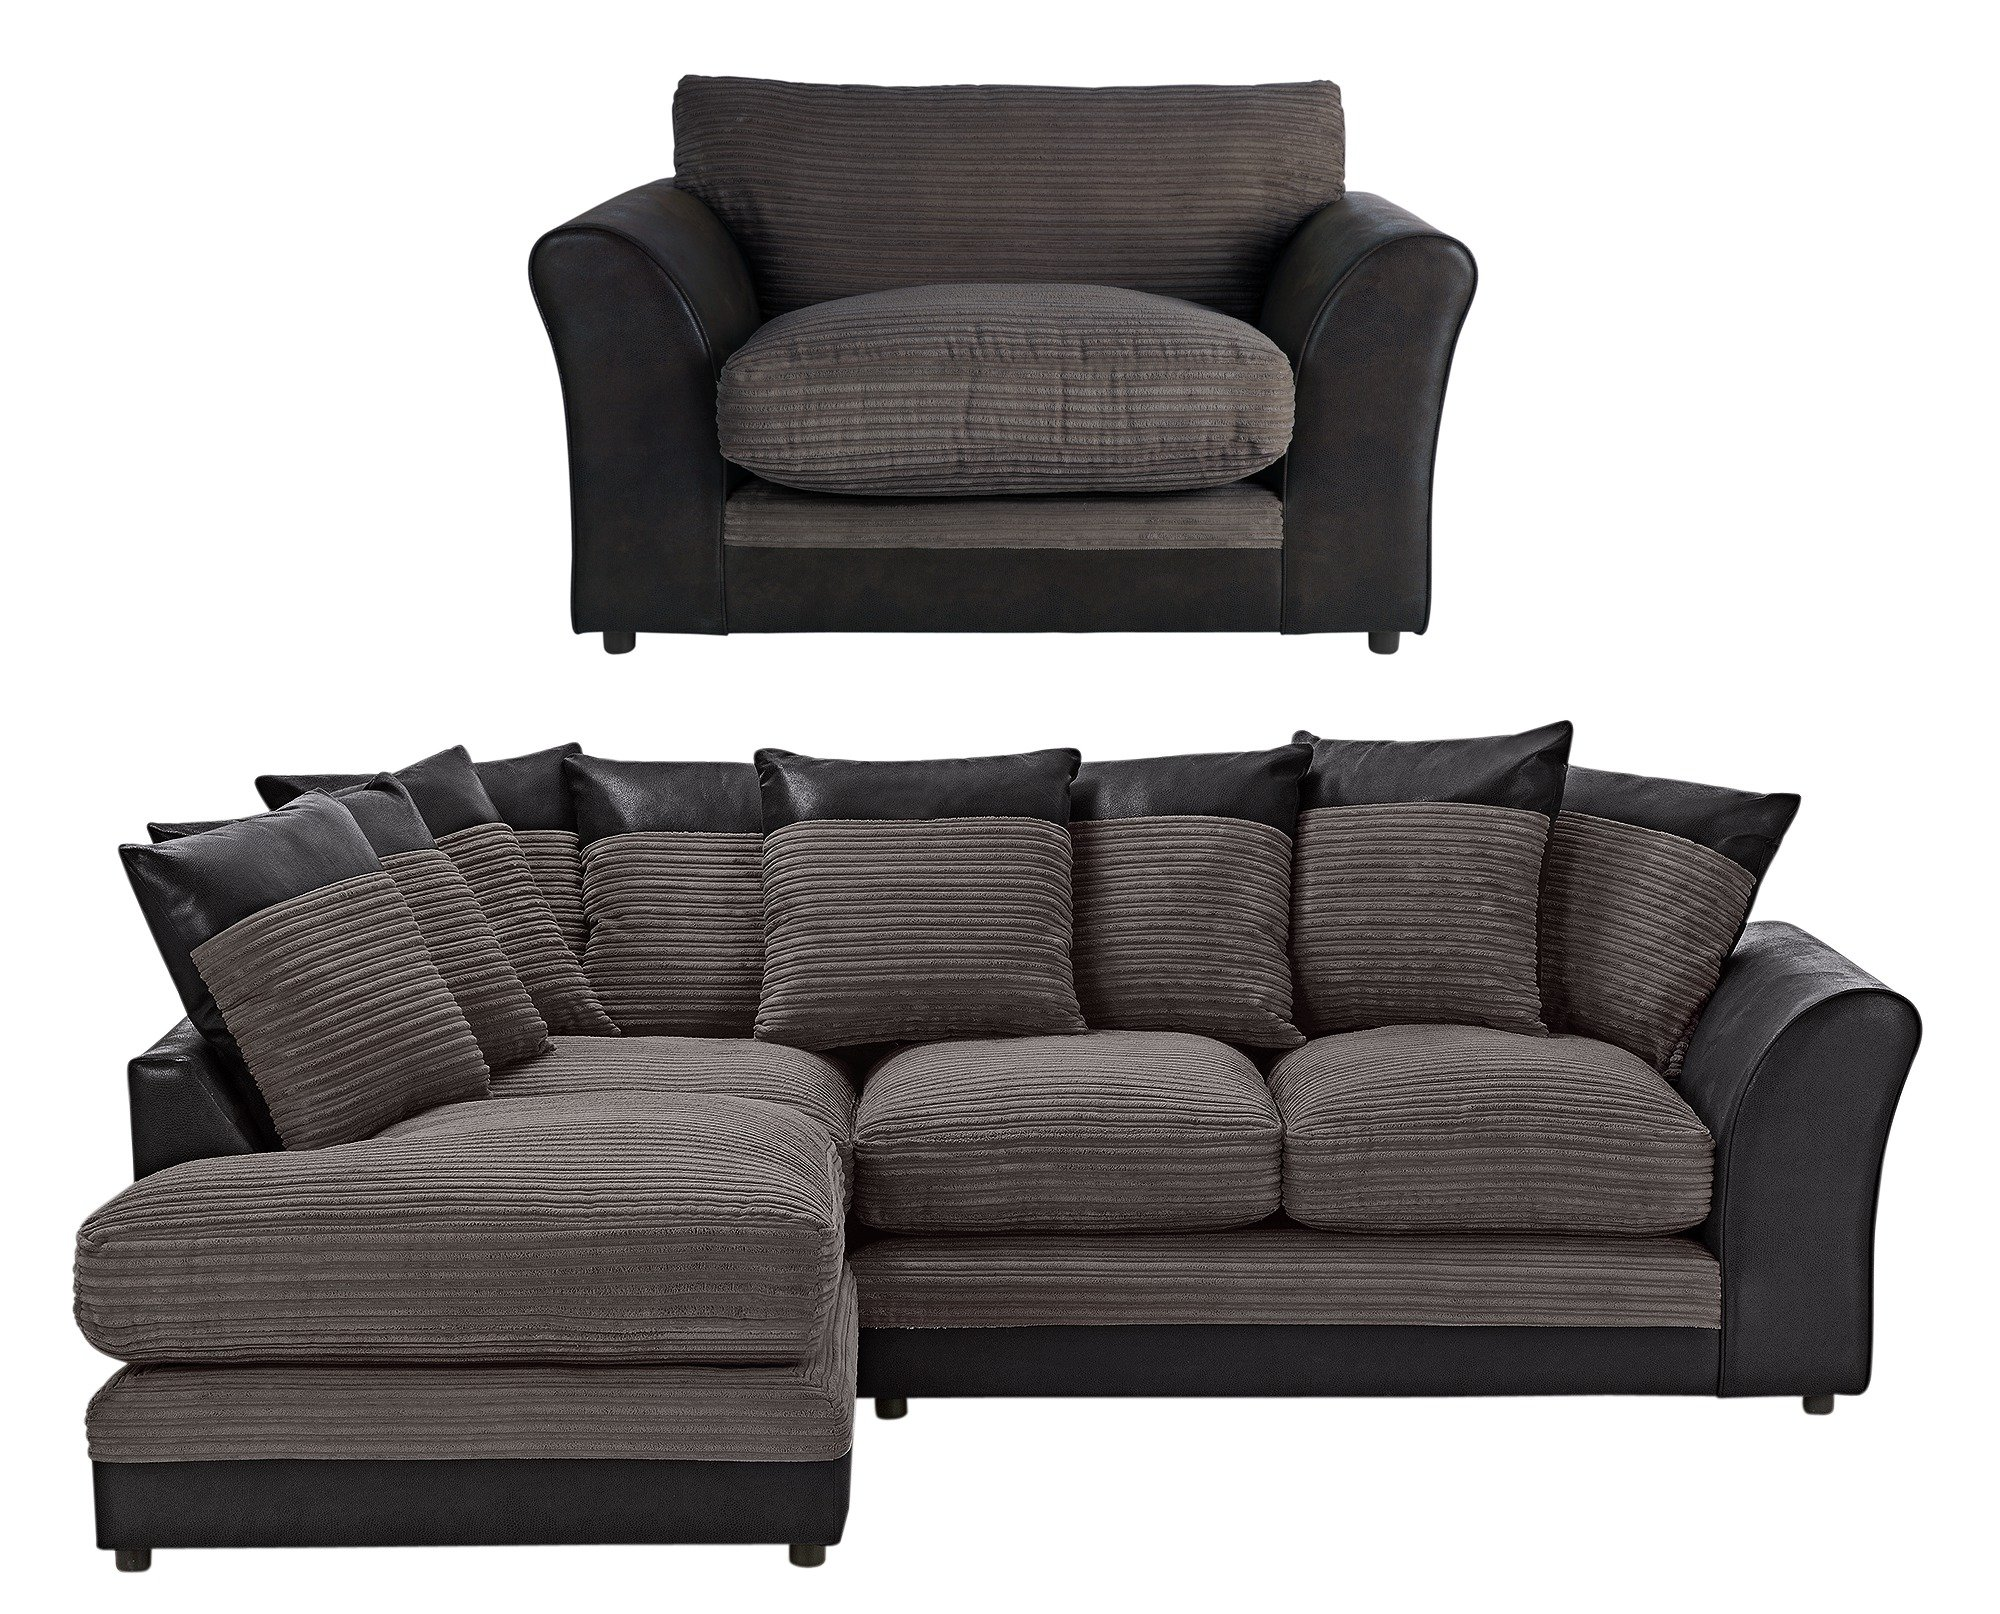 Argos Home Harley Large Left Corner Sofa and Chair - Char